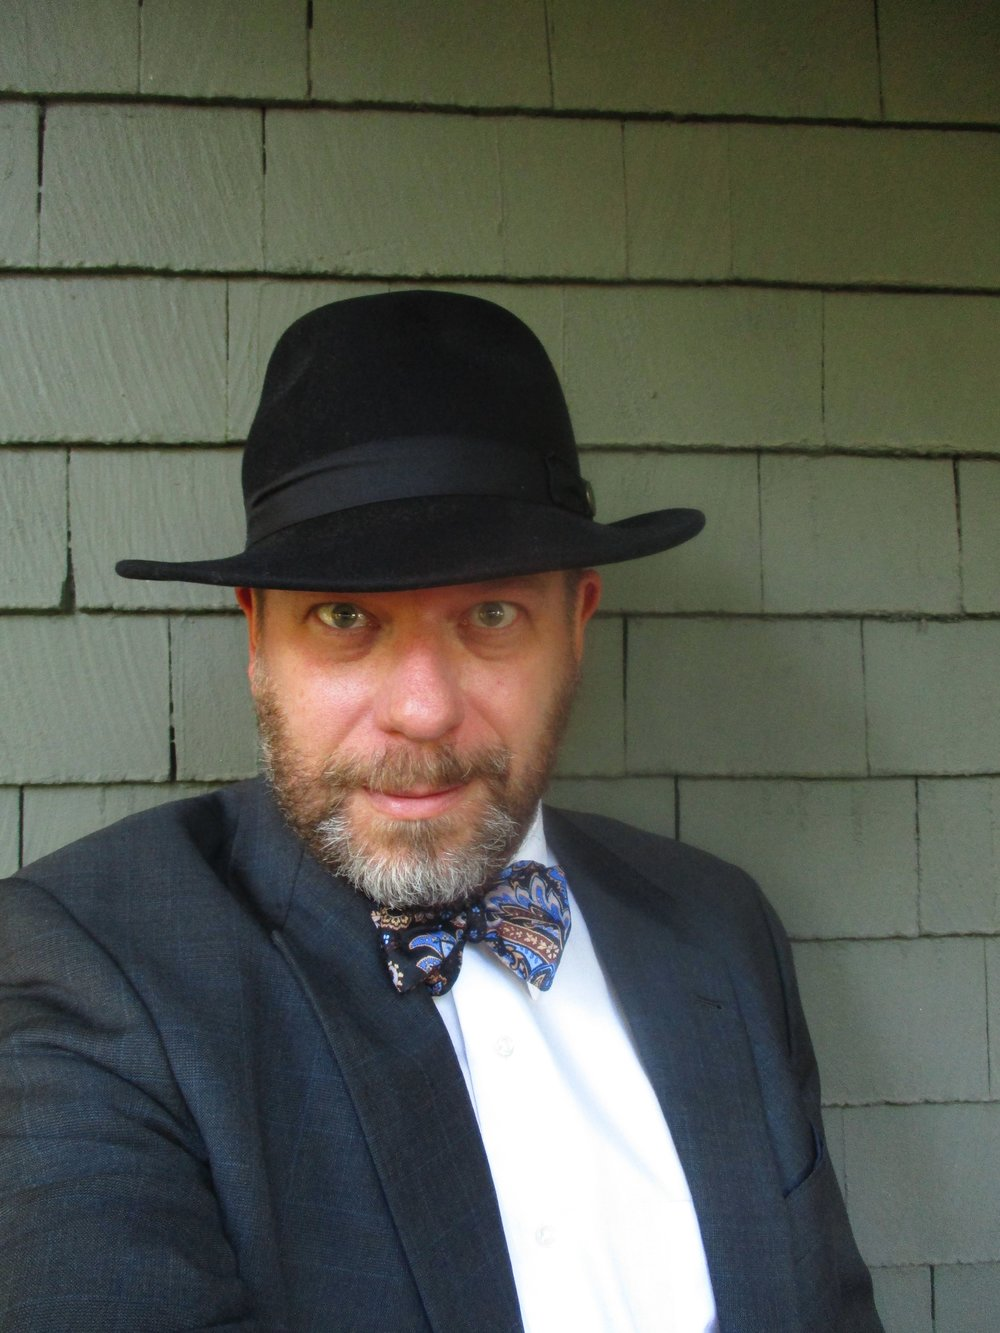 Etiquetteer is ready for Felt Hat Day with a favorite fedora.